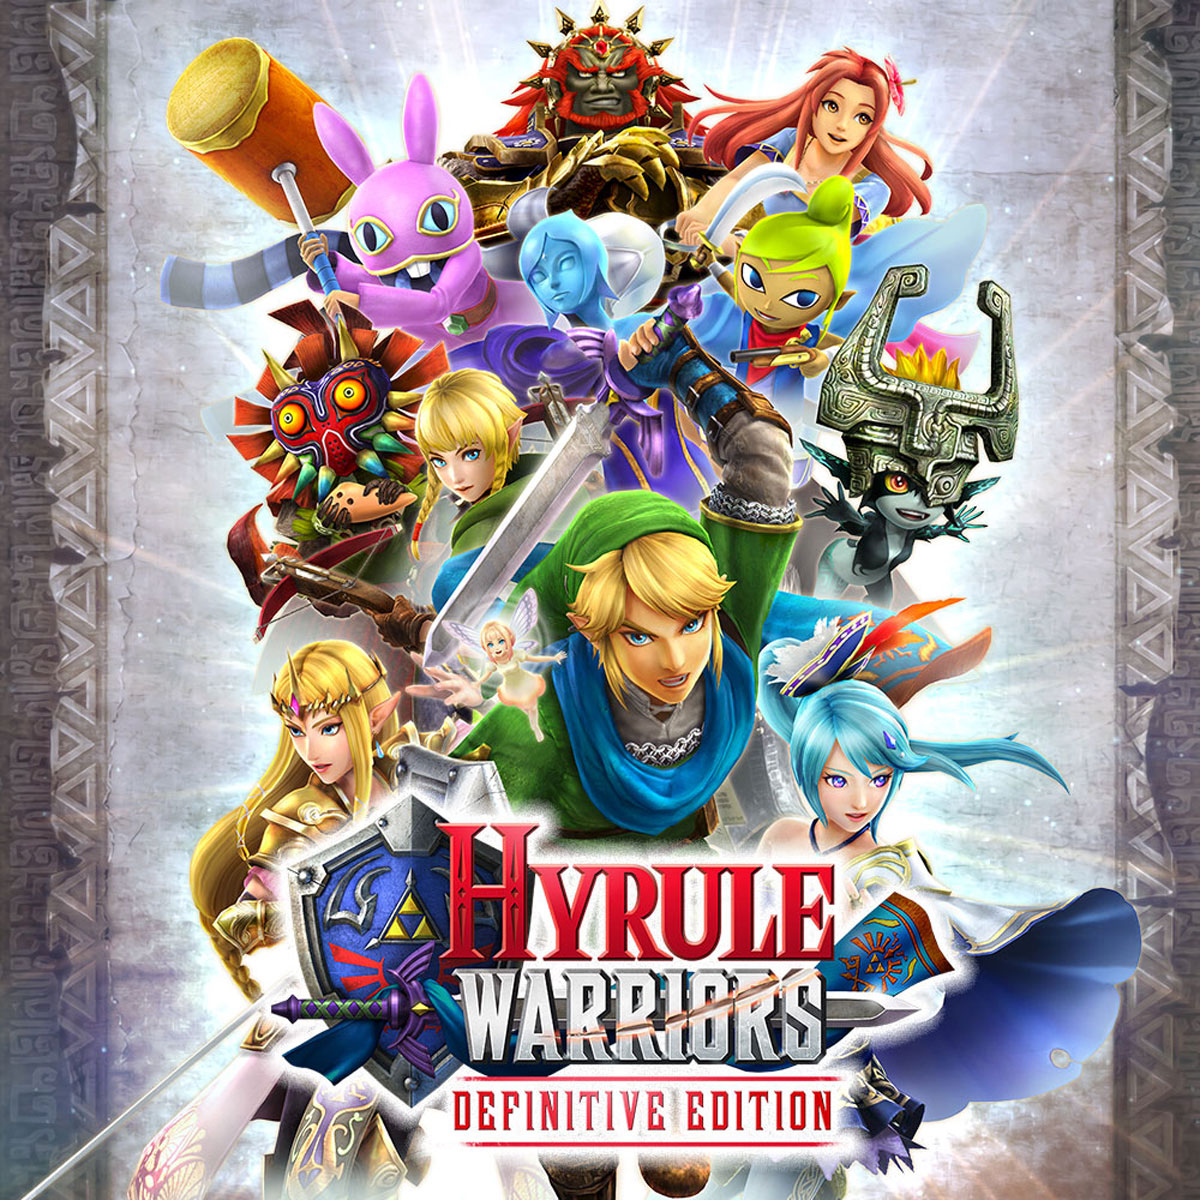 Hyrule Warriors: Definitive Edition (Nintendo Switch) rayman legends definitive edition nintendo switch